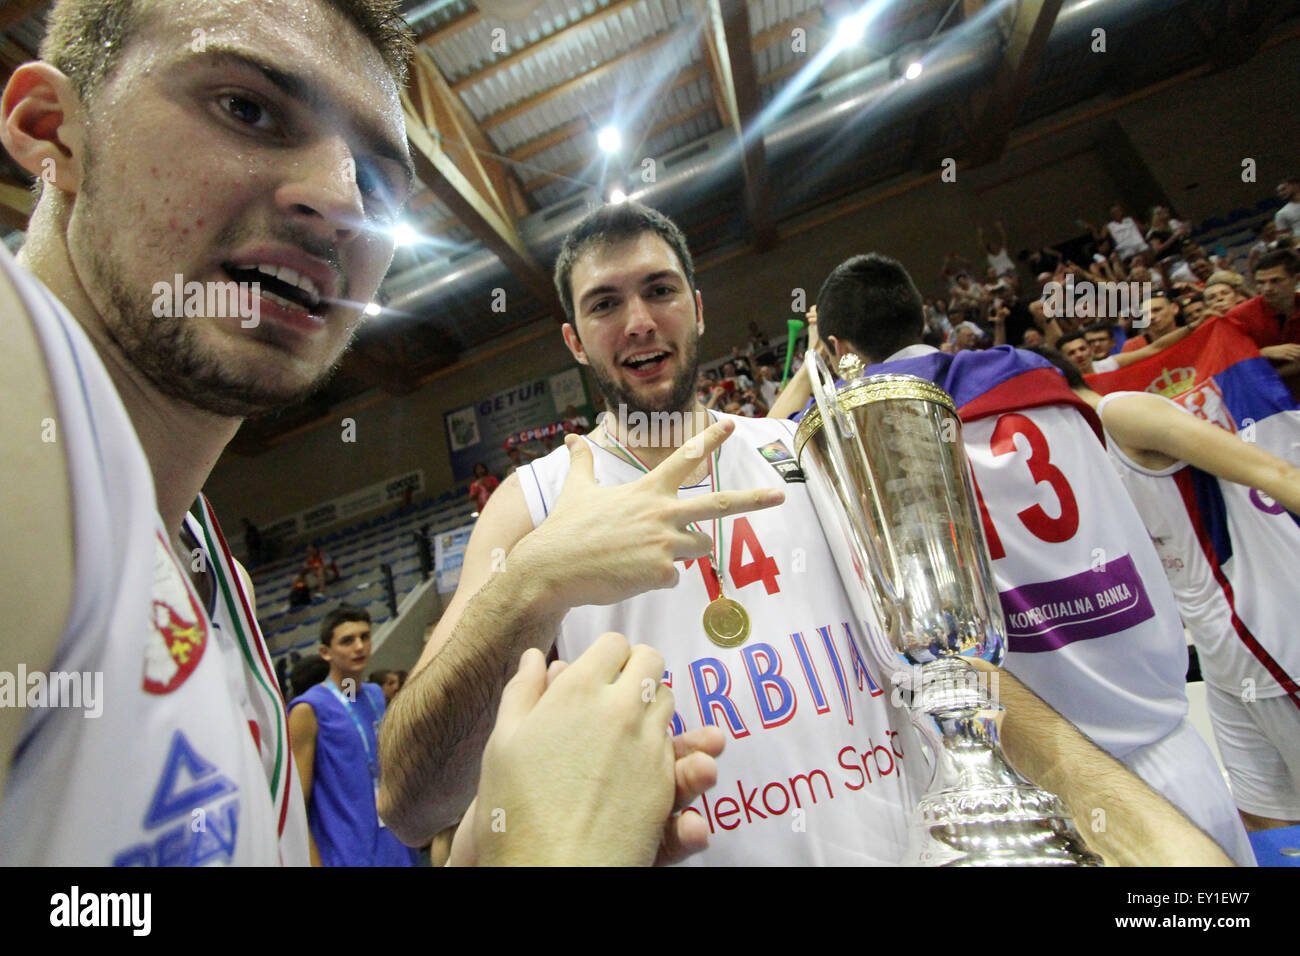 Lignano, Italy. 19th July, 2015. Serbia's Marko Guduric (L) and Serbia's Djoko Salic s their victory over - Stock Image